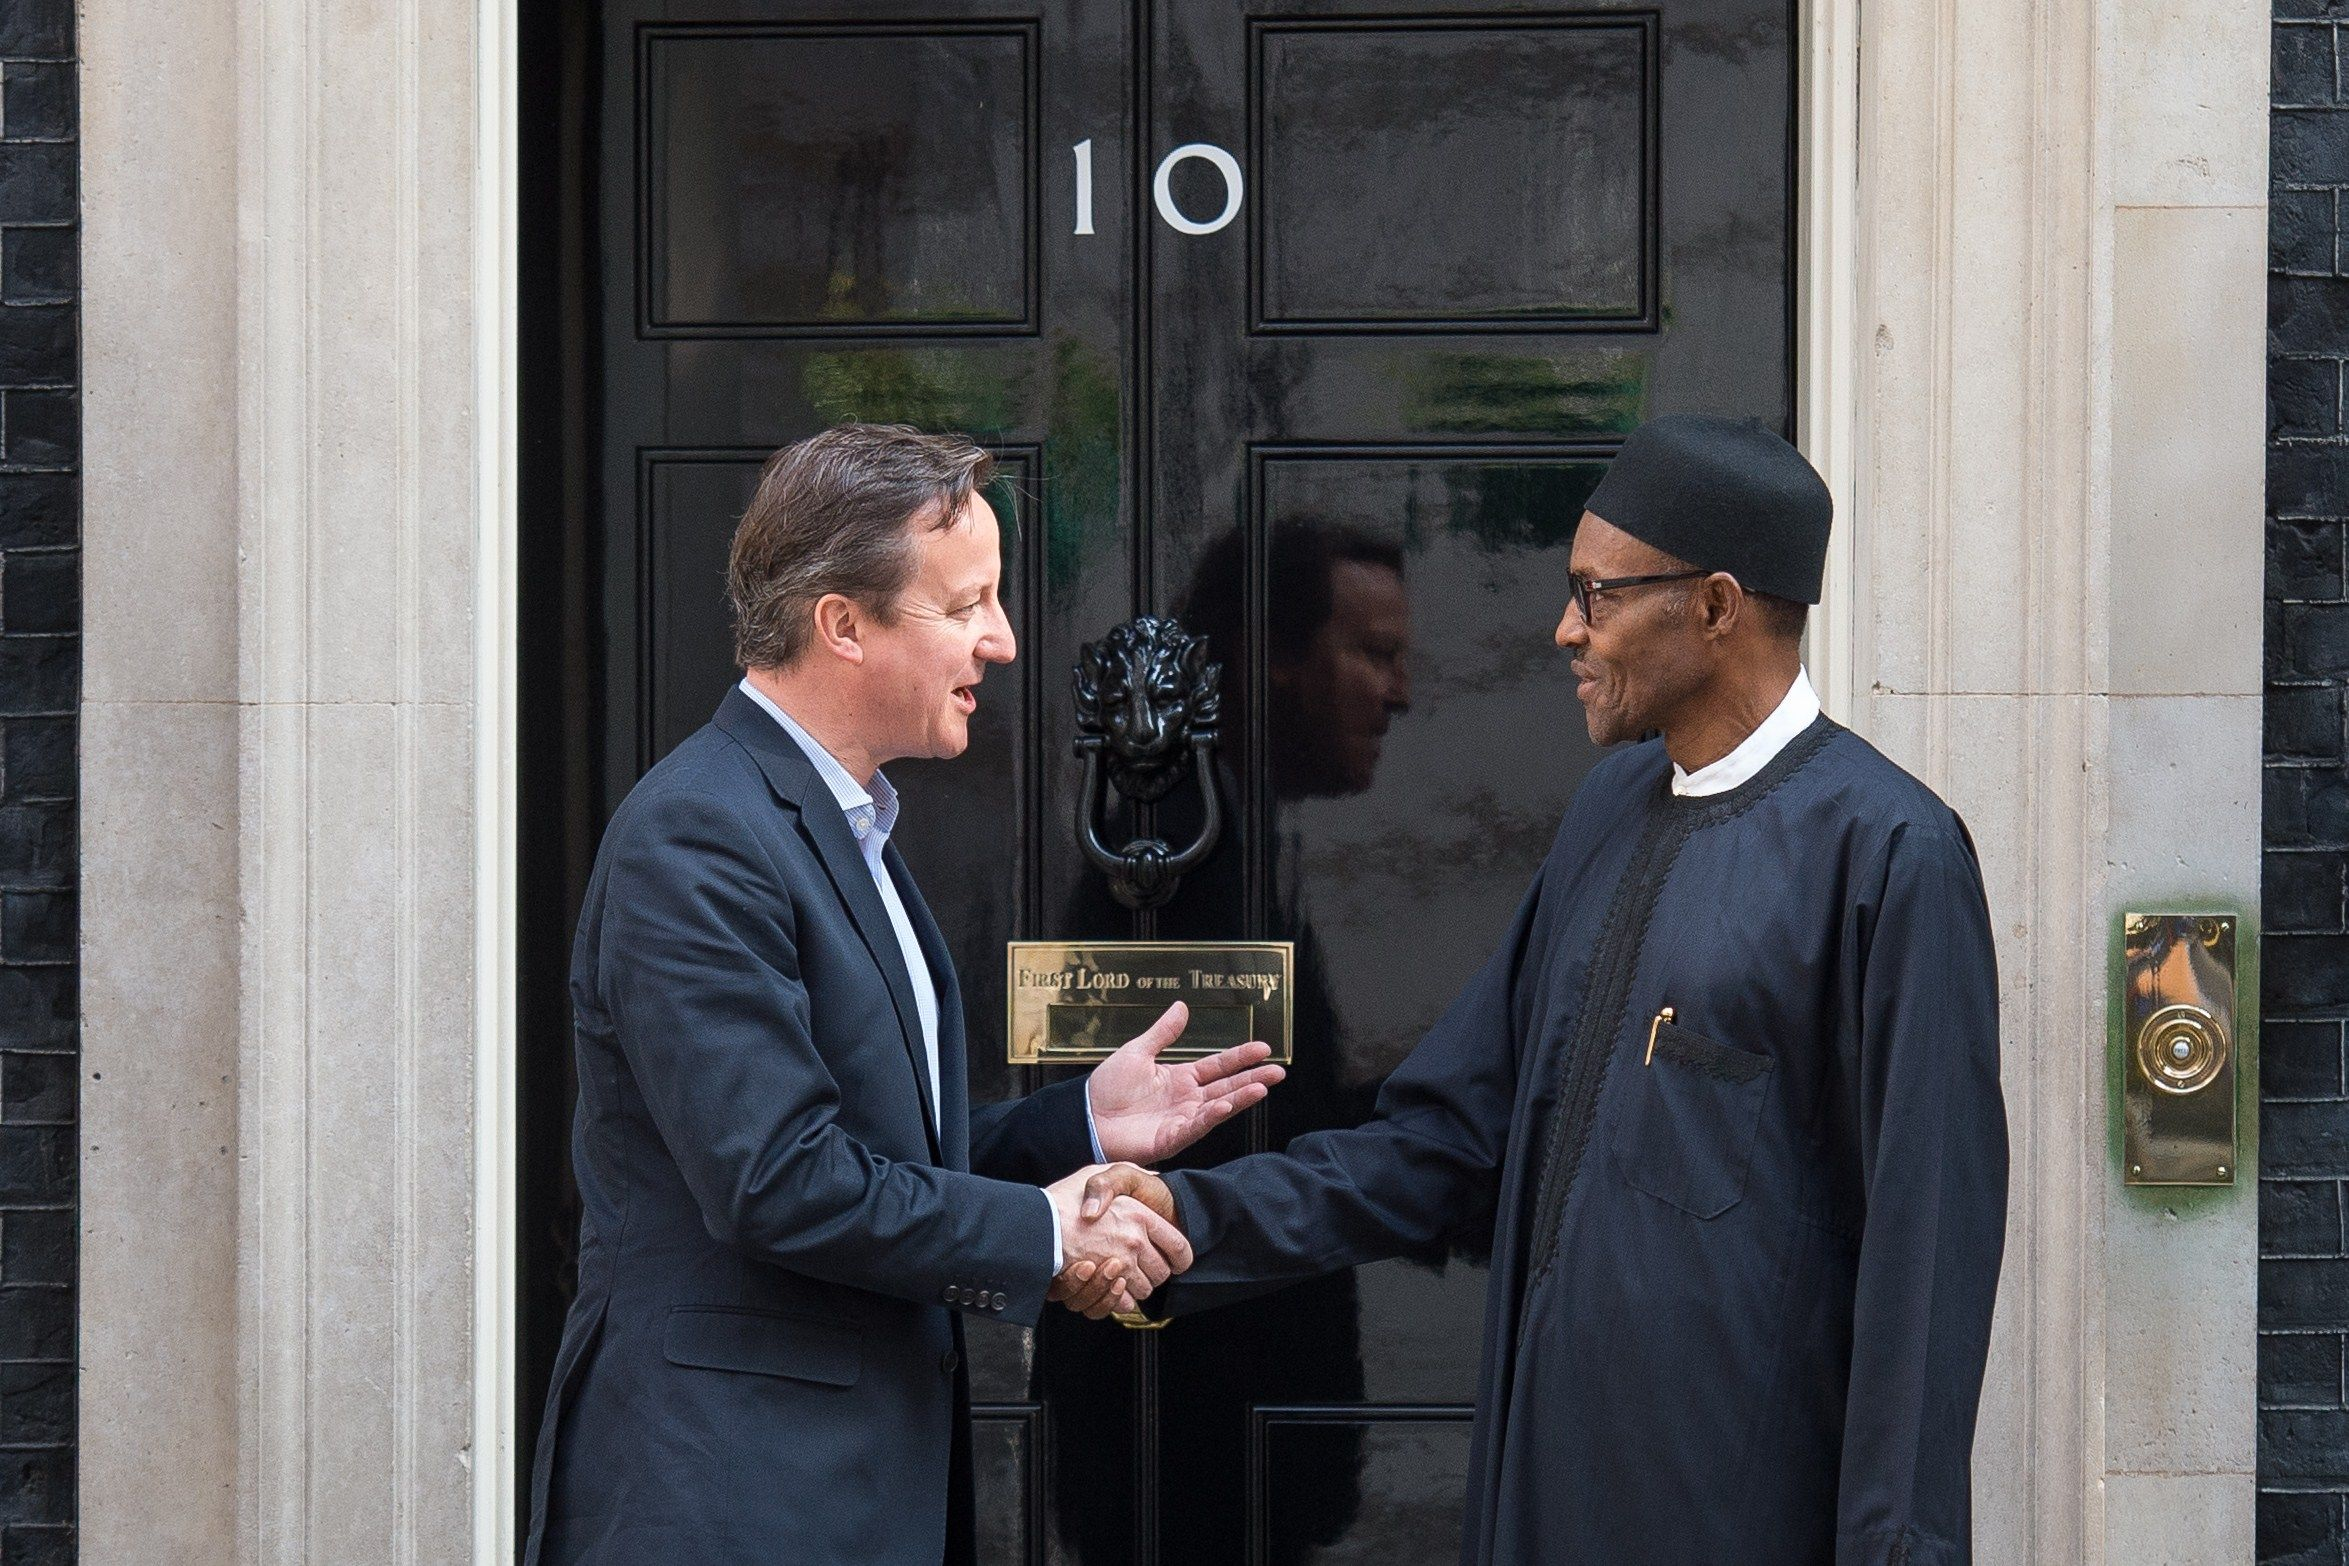 Muhammadu Buhari shakes hands with David Cameron